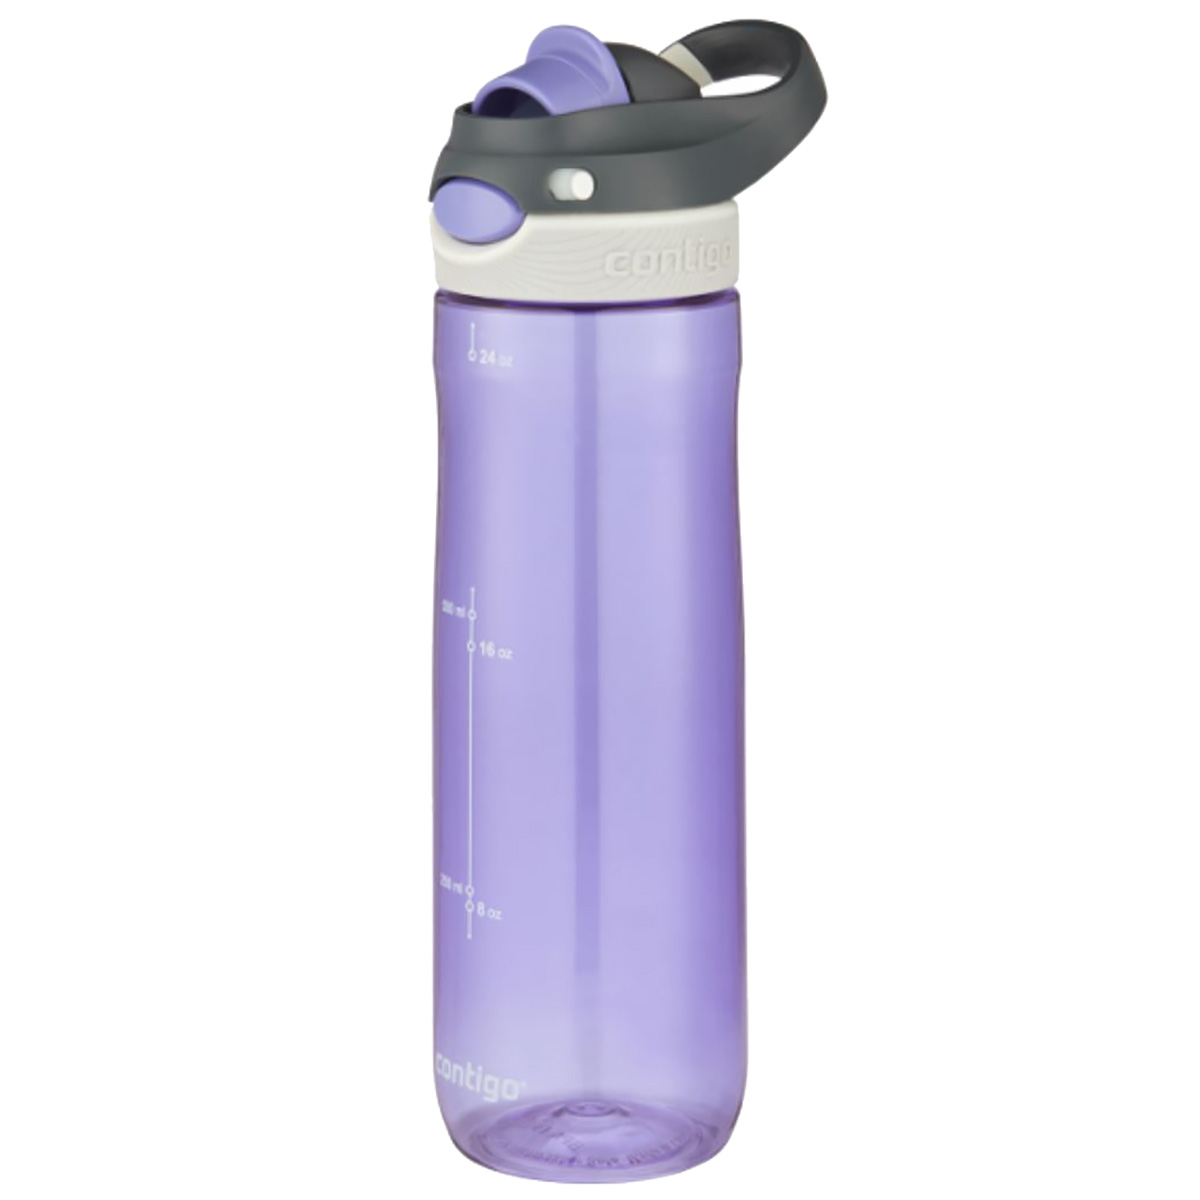 Contigo-24-oz-Chug-Autospout-Leak-Proof-Water-Bottle